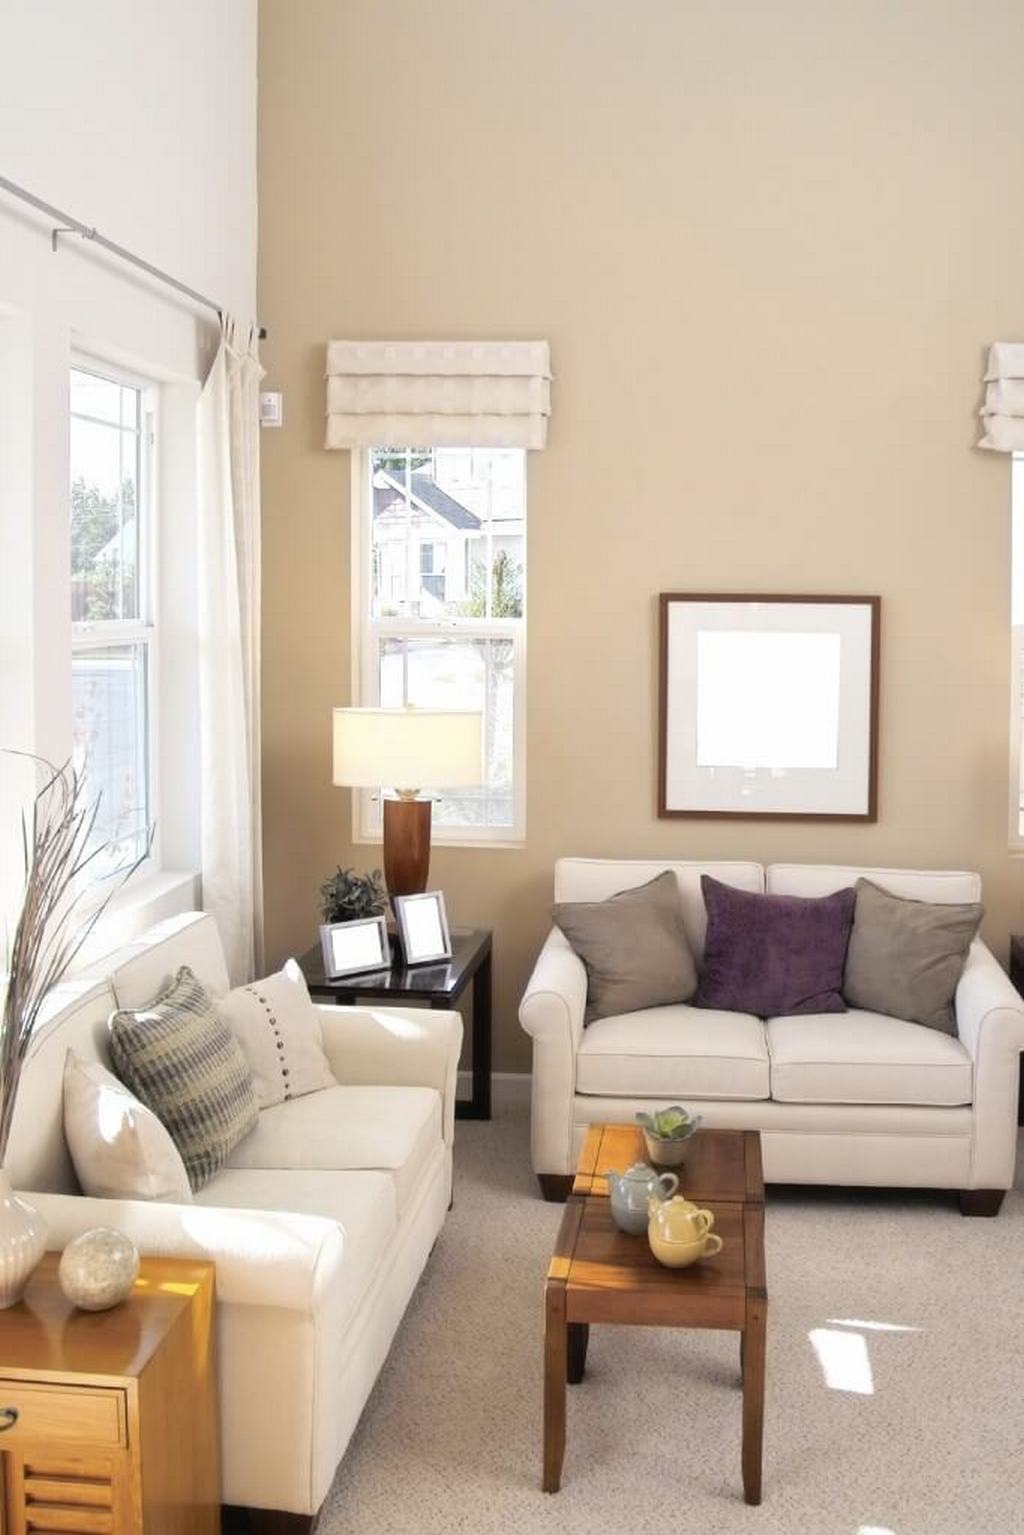 A Living Room In Light Taupe And Ivory With Side Tables In Varying ...